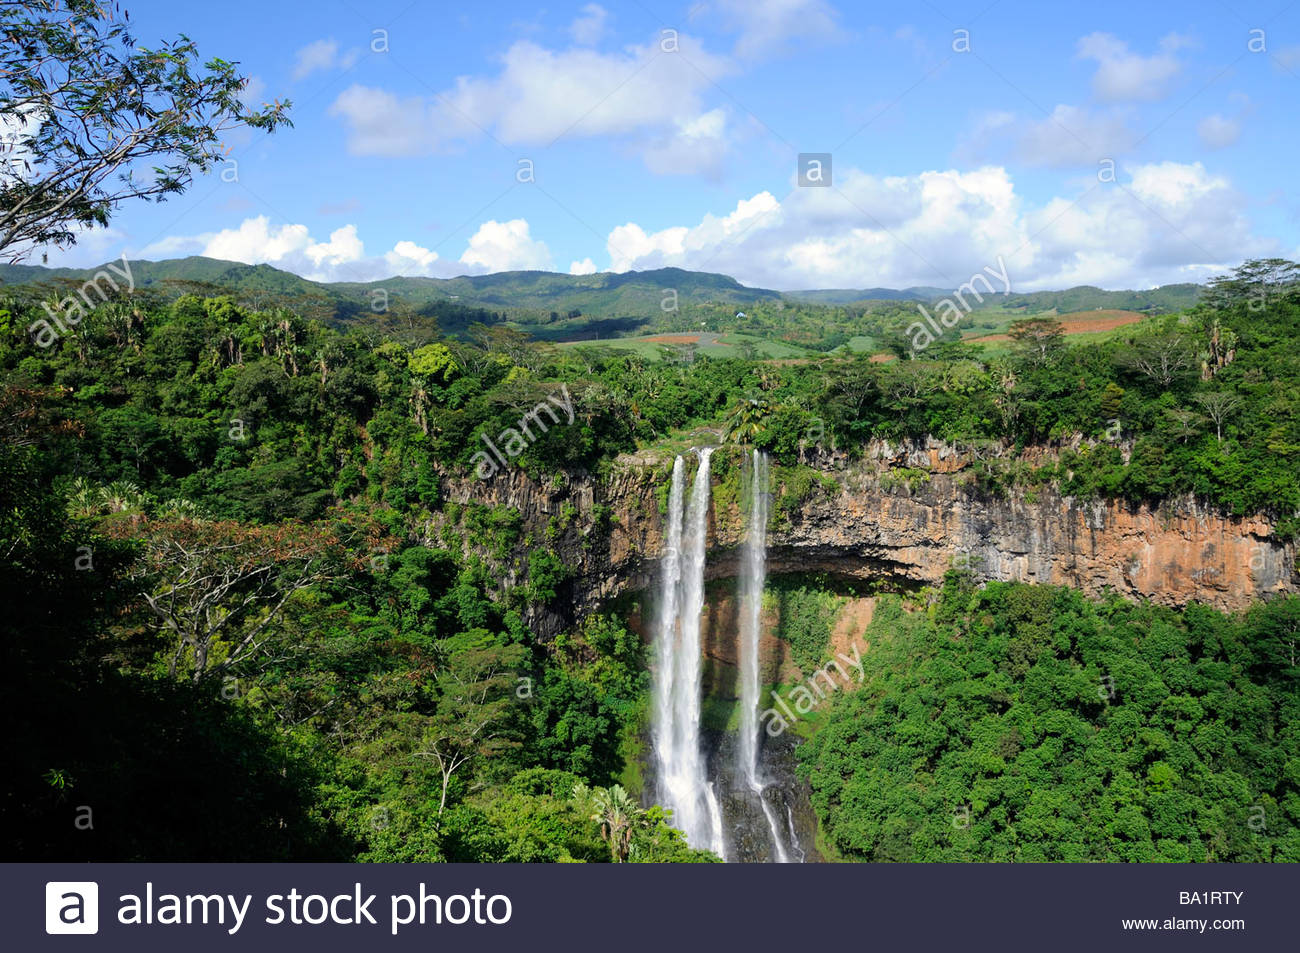 The spectacular Chamarel Waterfalls, Chamarel, Mauritius island - Stock Image